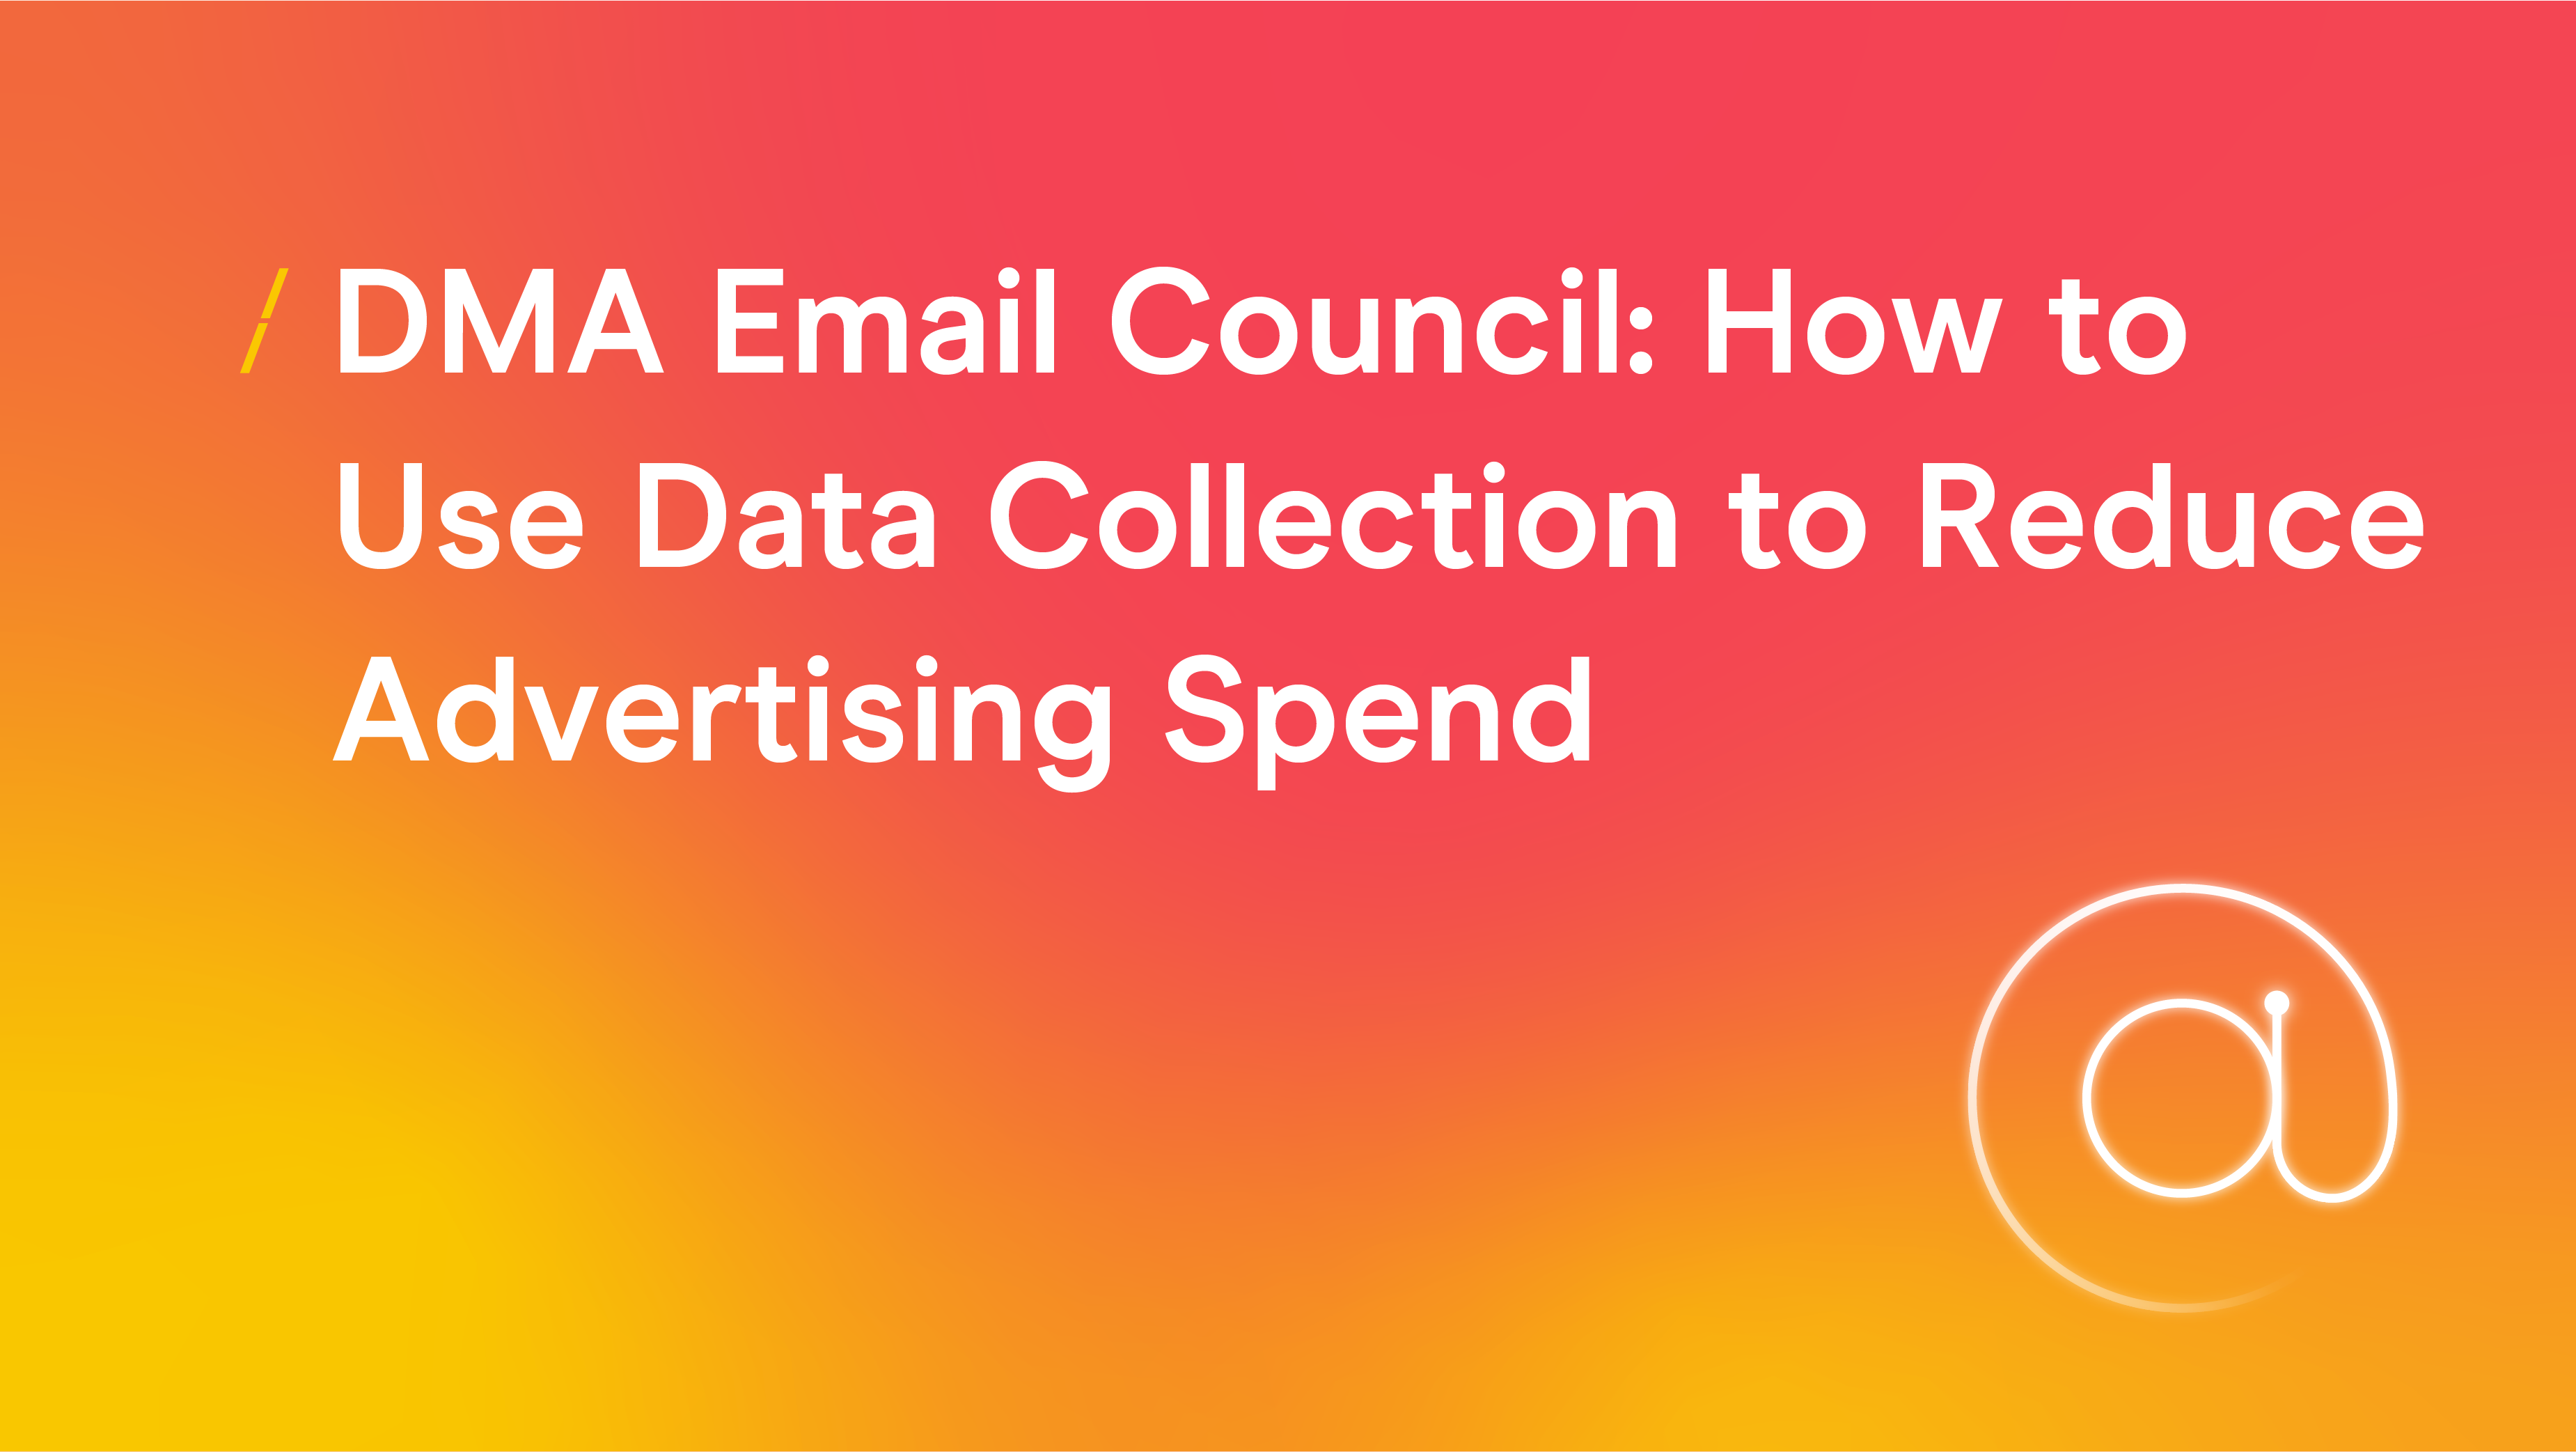 DMA Email Council- How to Use Data Collection to Reduce Advertising Spend_Research articles copy 2.png